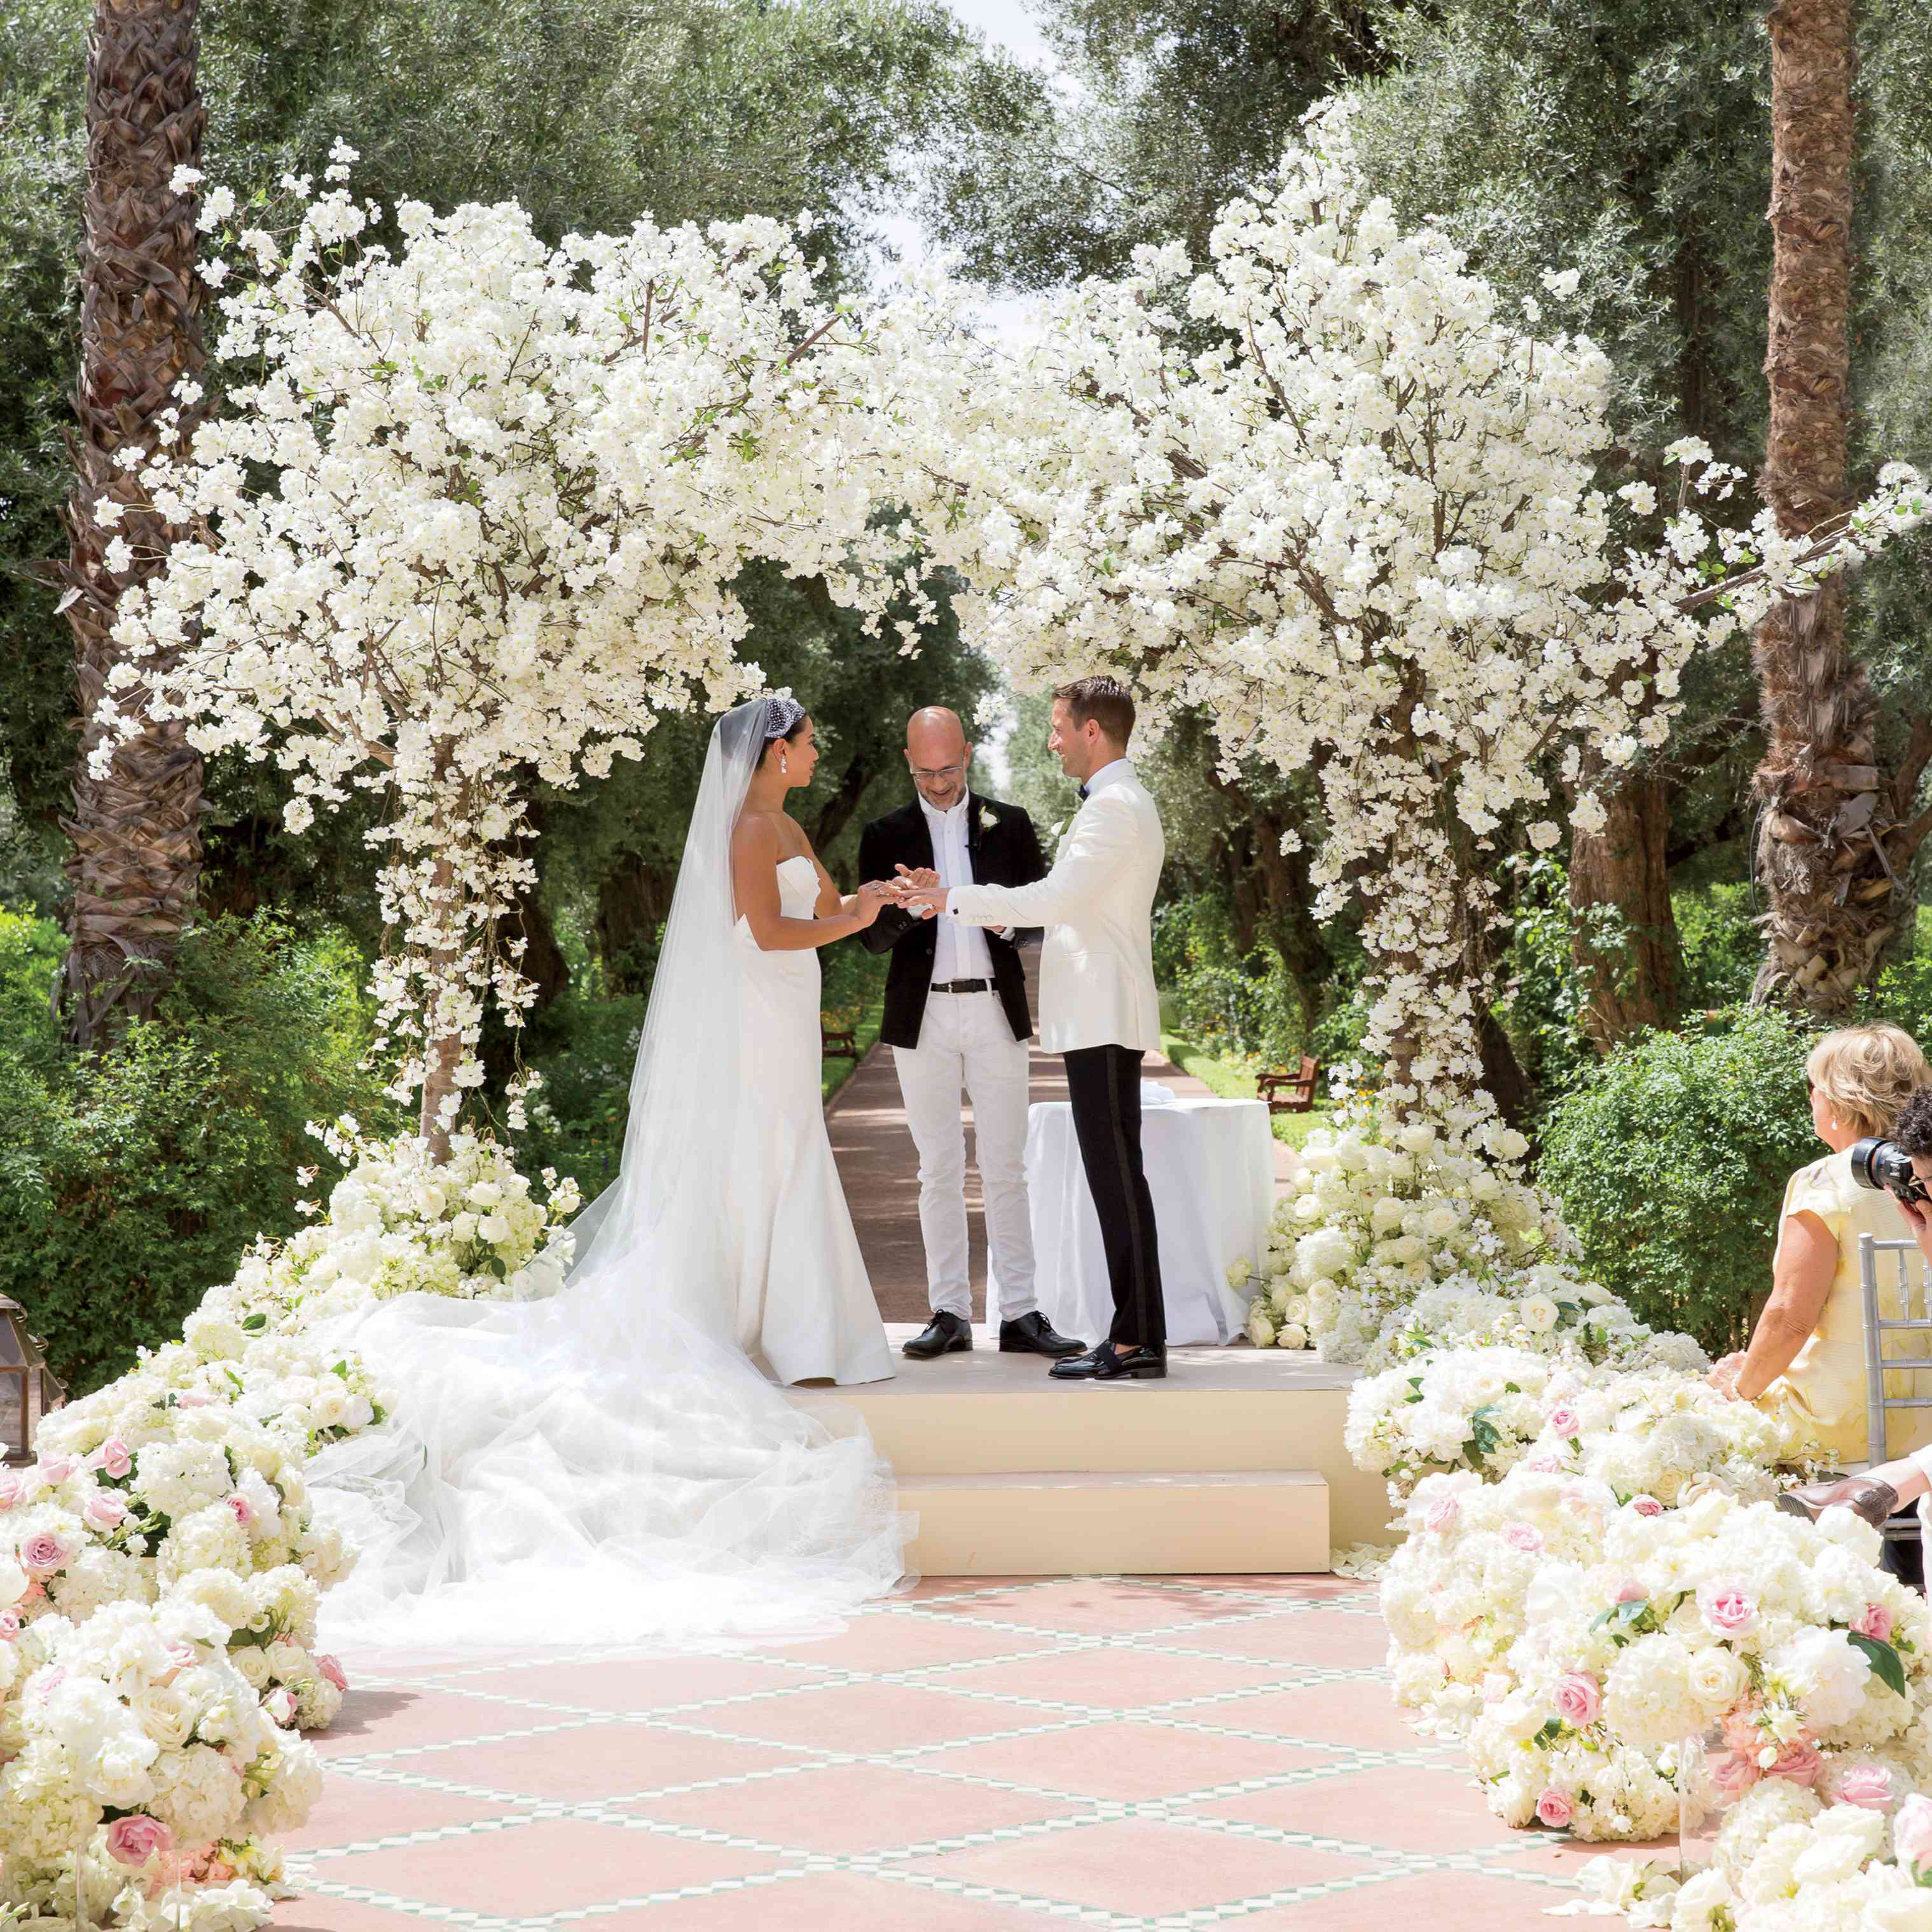 The Ceremony Decor: 34 Stylish Wedding Aisle Decoration Ideas